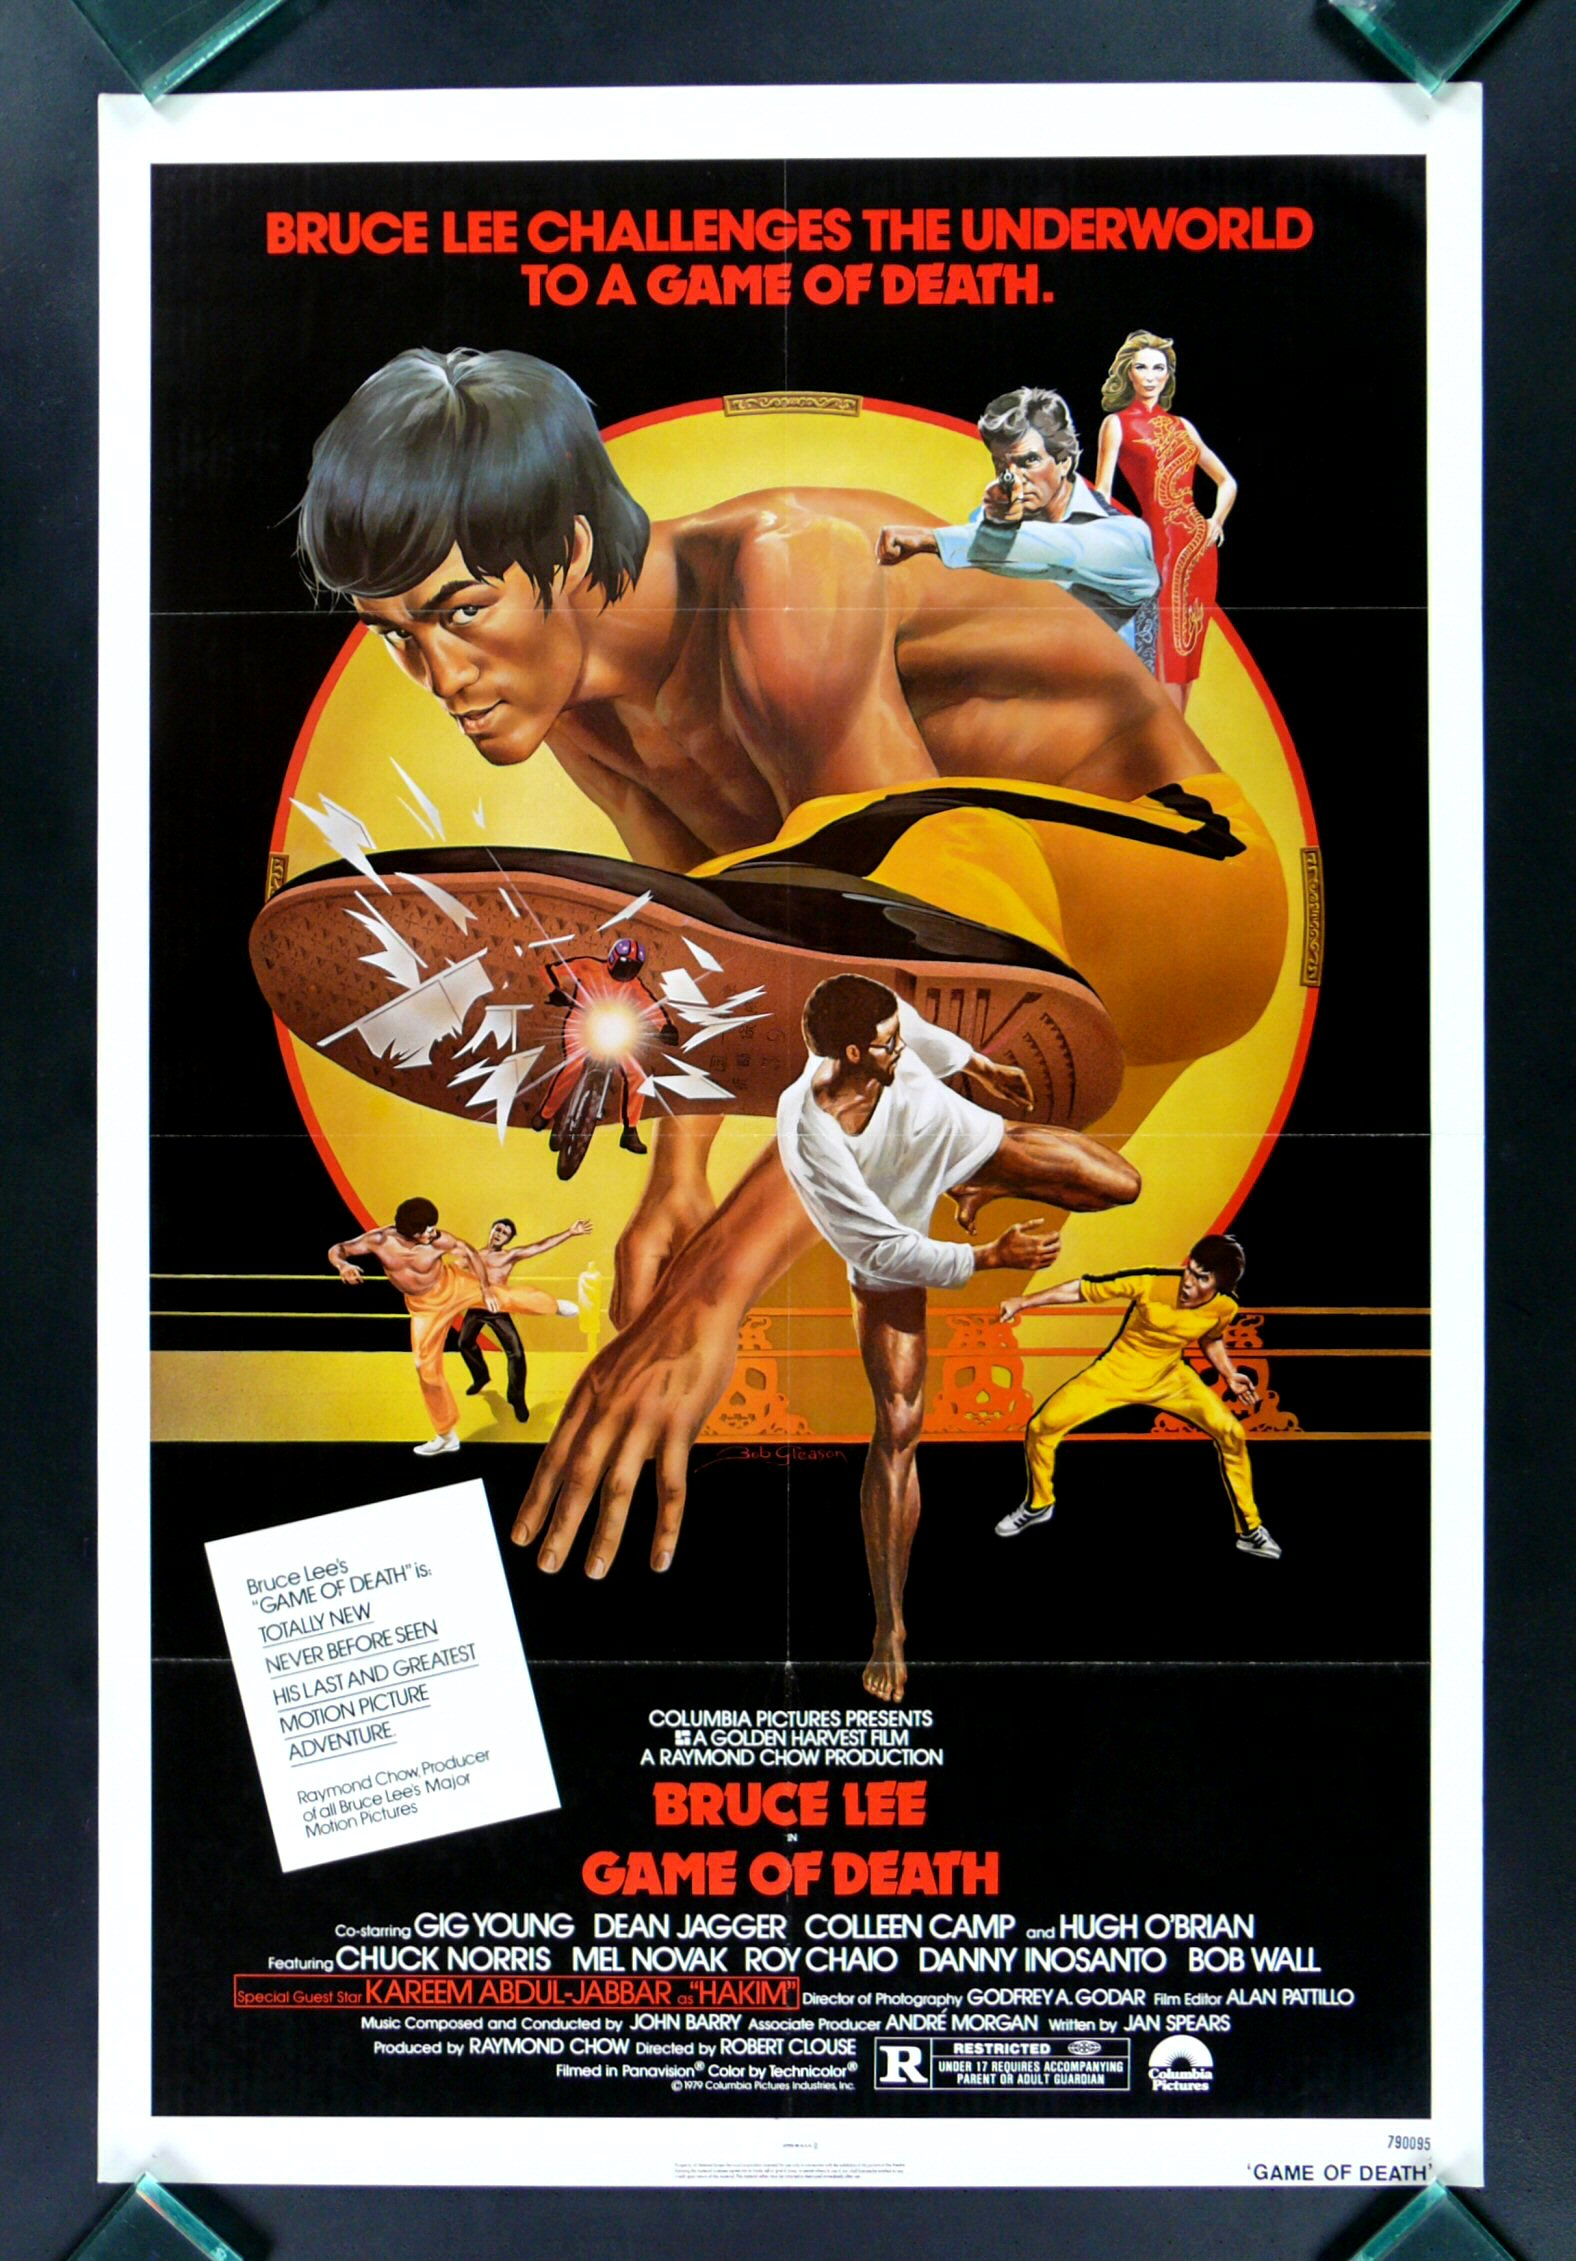 game of death bruce lee karate martial art movie poster